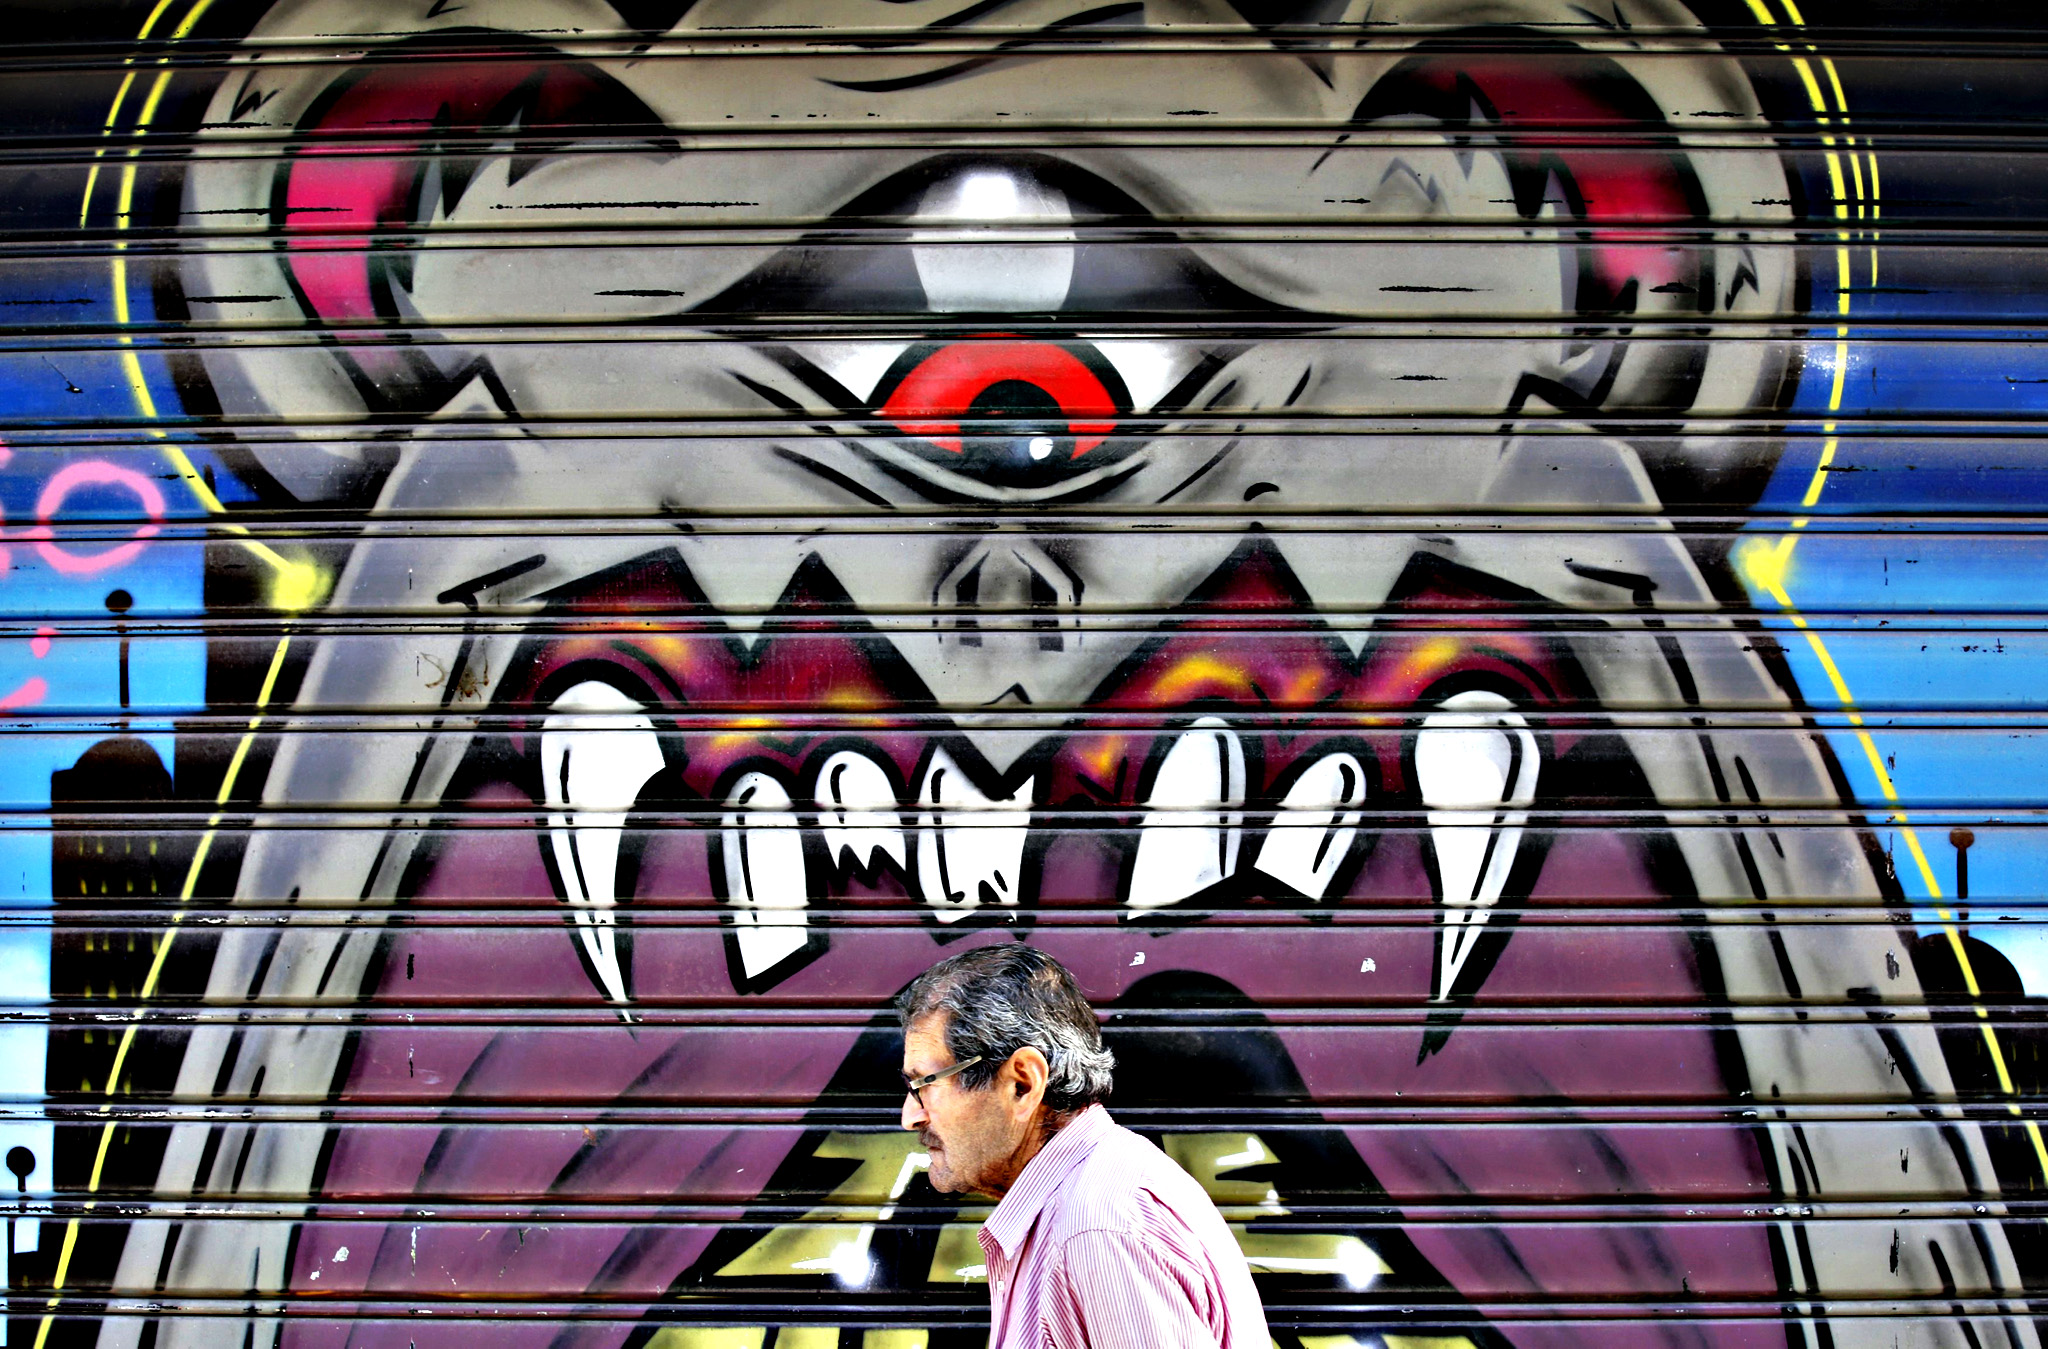 A man walks past graffiti painted on a closed shop at Monastiraki area in central Athens...A man walks past graffiti painted on a closed shop at Monastiraki area in central Athens, Greece, July 7, 2015. Greece faces a last chance to stay in the euro zone on Tuesday when Prime Minister Alexis Tsipras puts proposals to an emergency euro zone summit after Greek voters resoundingly rejected the austerity terms of a defunct bailout.